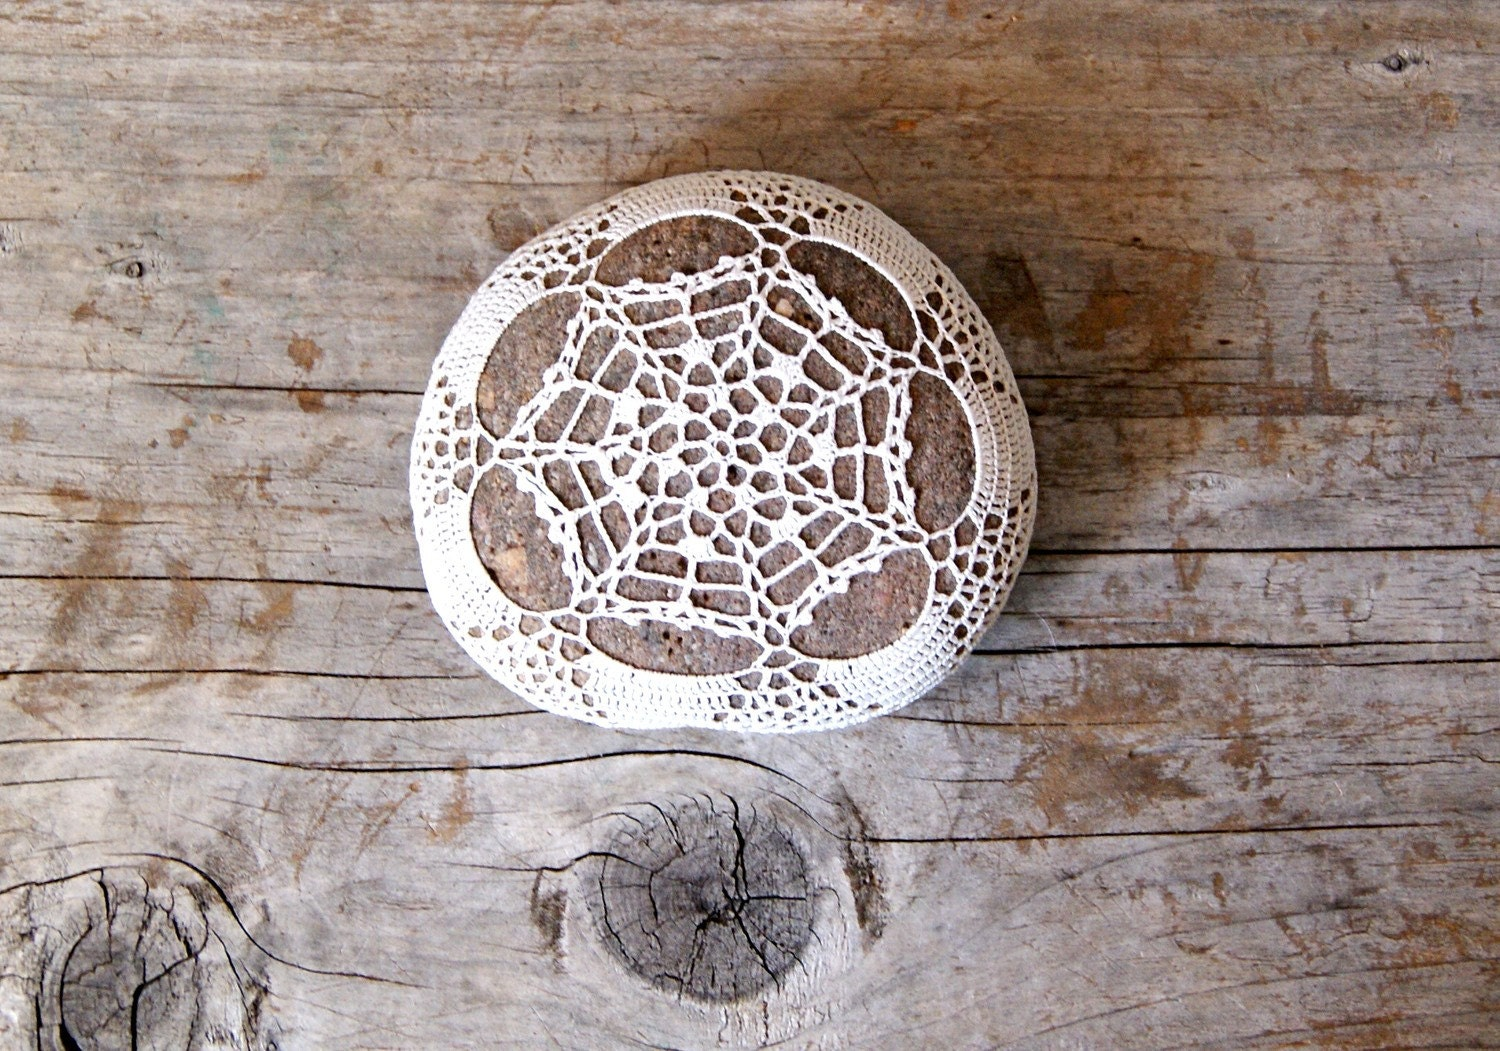 Bronwyn's Crochet Covered River Rock / Beach Stone The Vintage Collection No. 022 Limit Edition / Ready to Ship